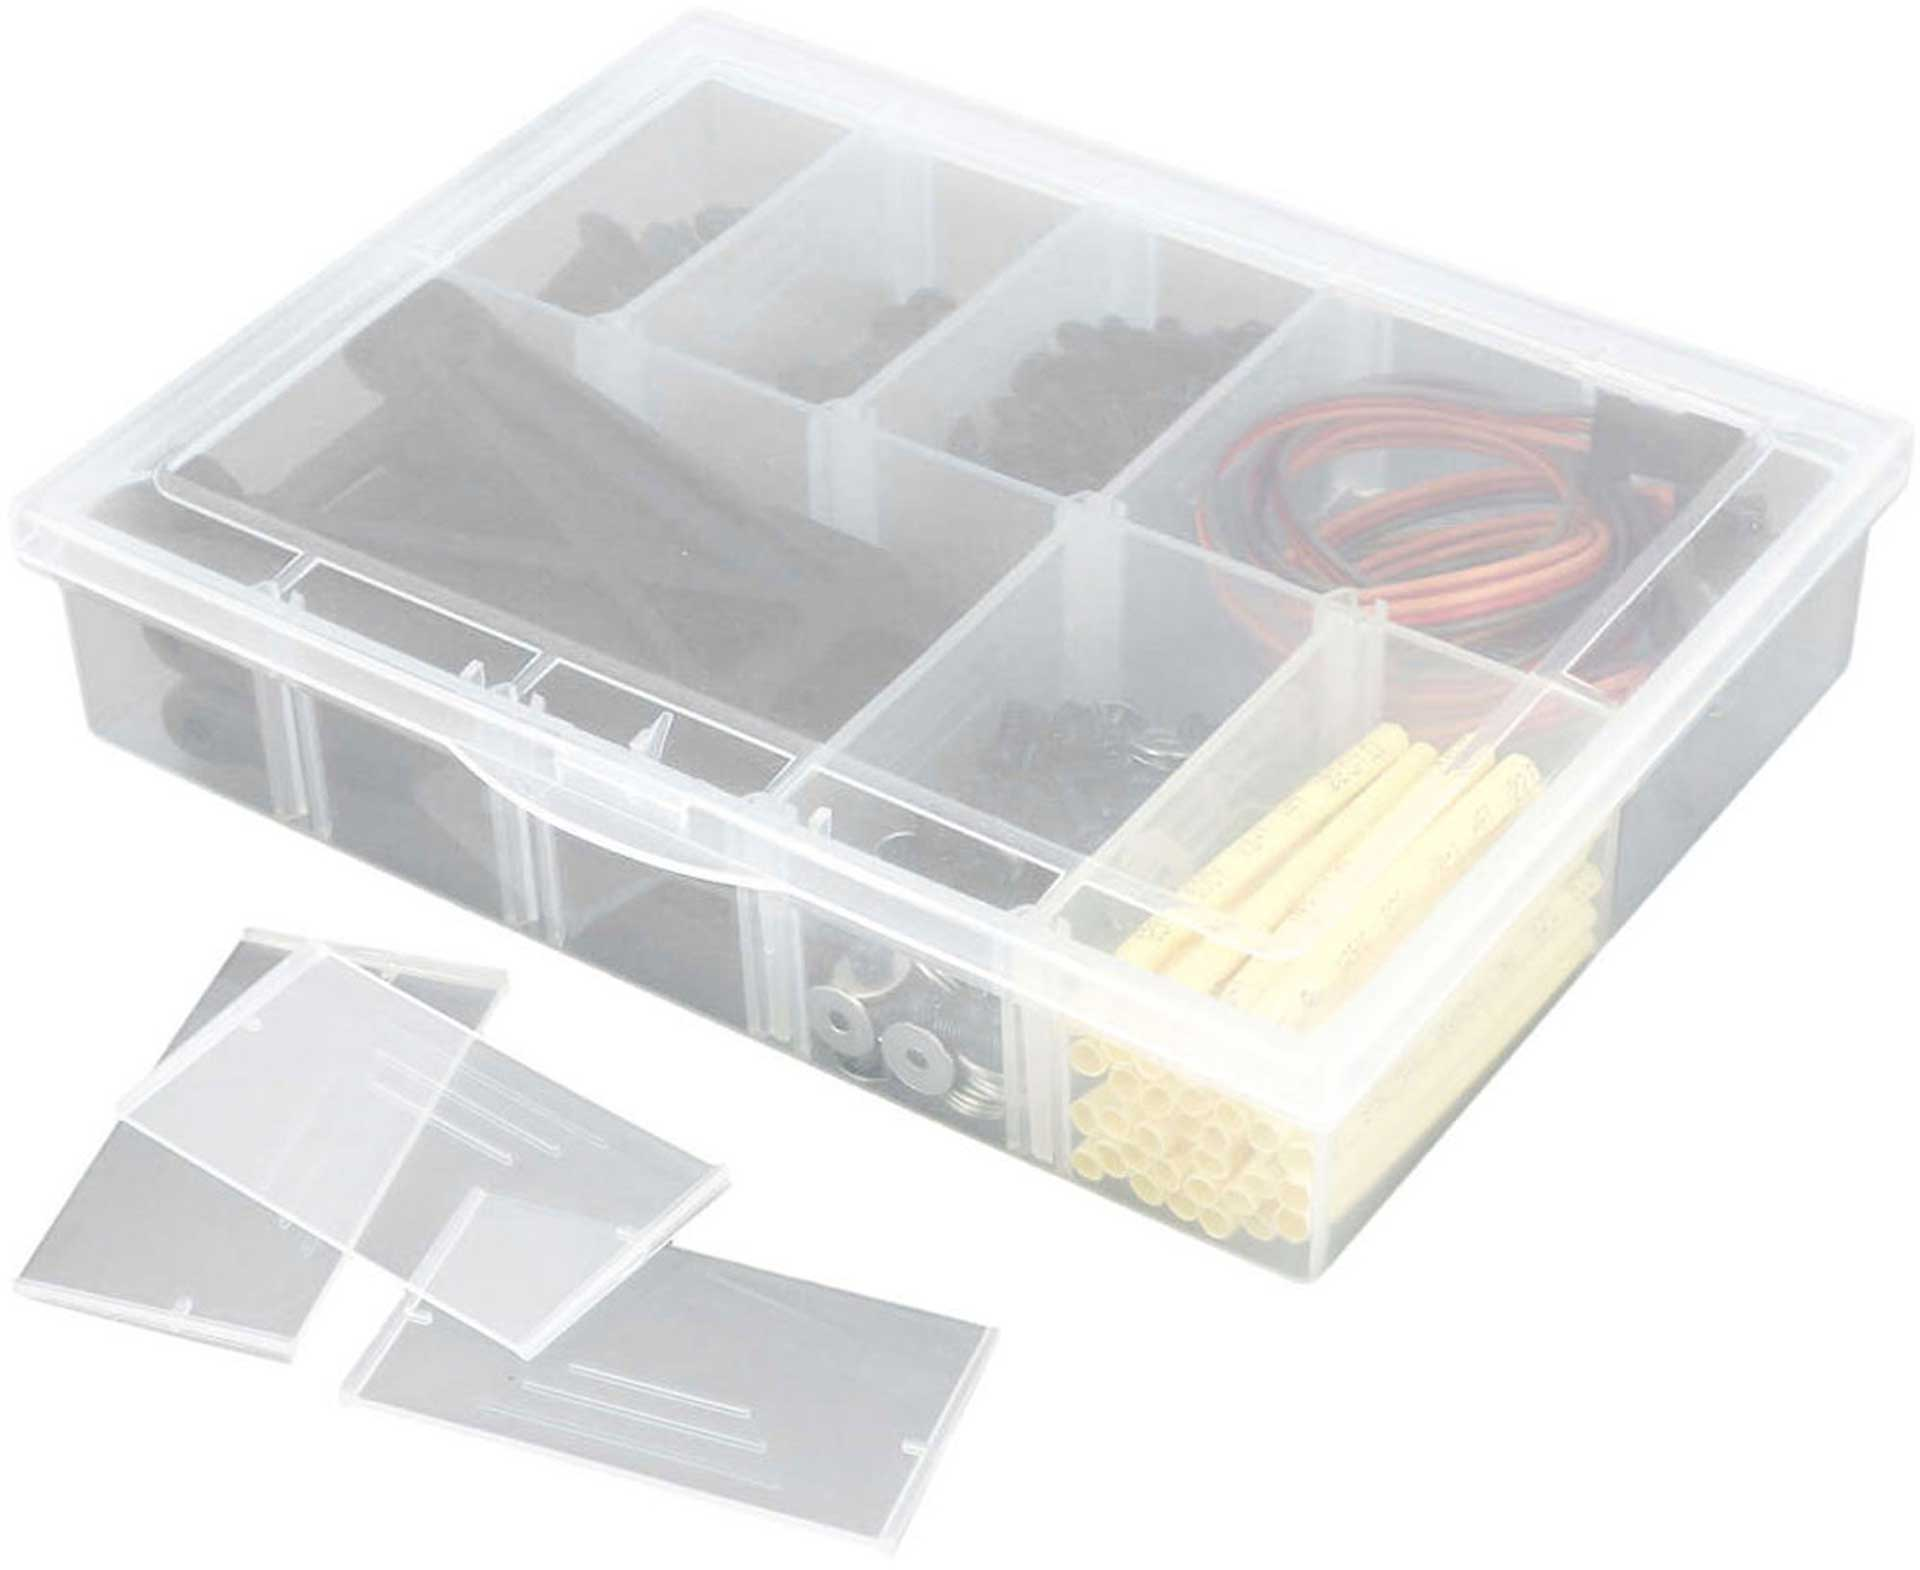 ROBITRONIC ASSORTMENT BOX 10 COMPARTMENTS 134X100X29MM VARIABLE